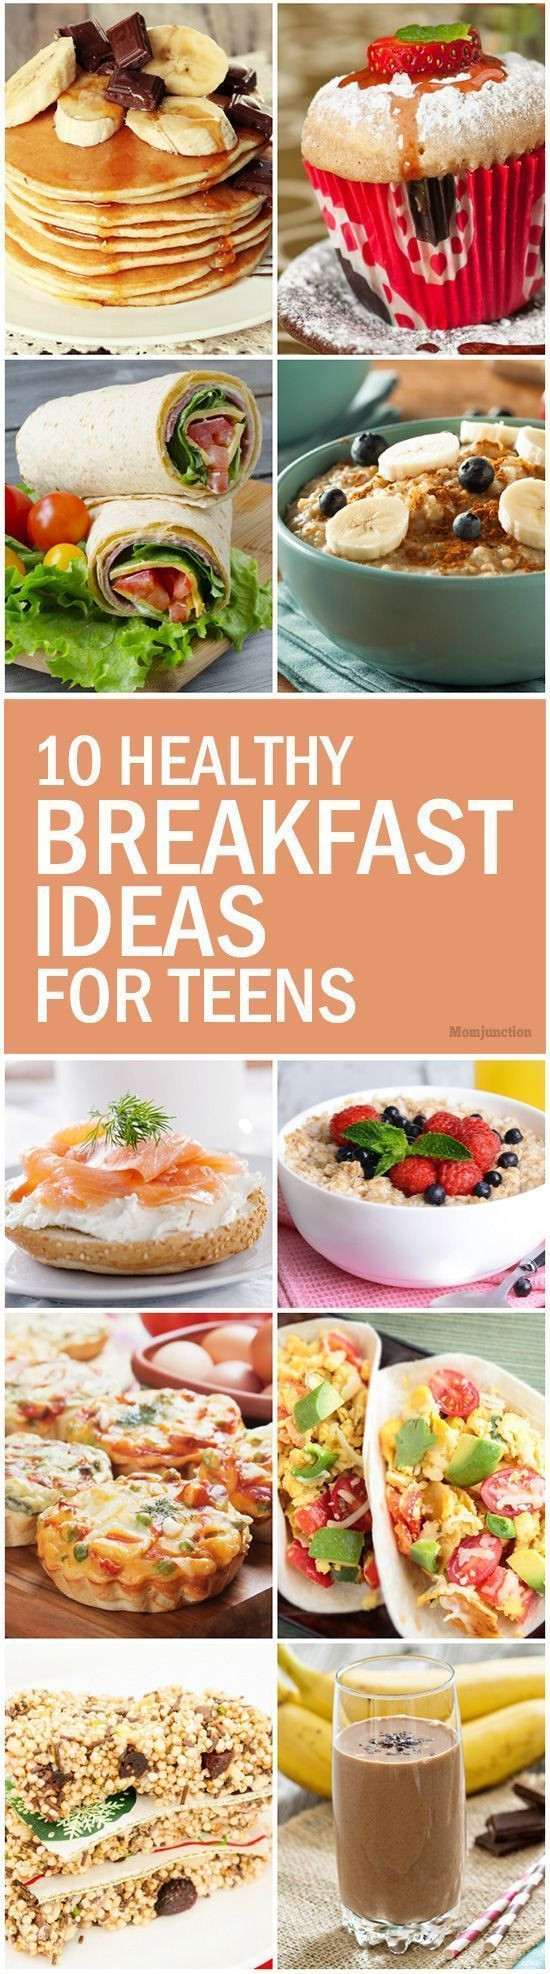 Healthy Breakfast For Teens  1000 images about Teen Topics on Pinterest